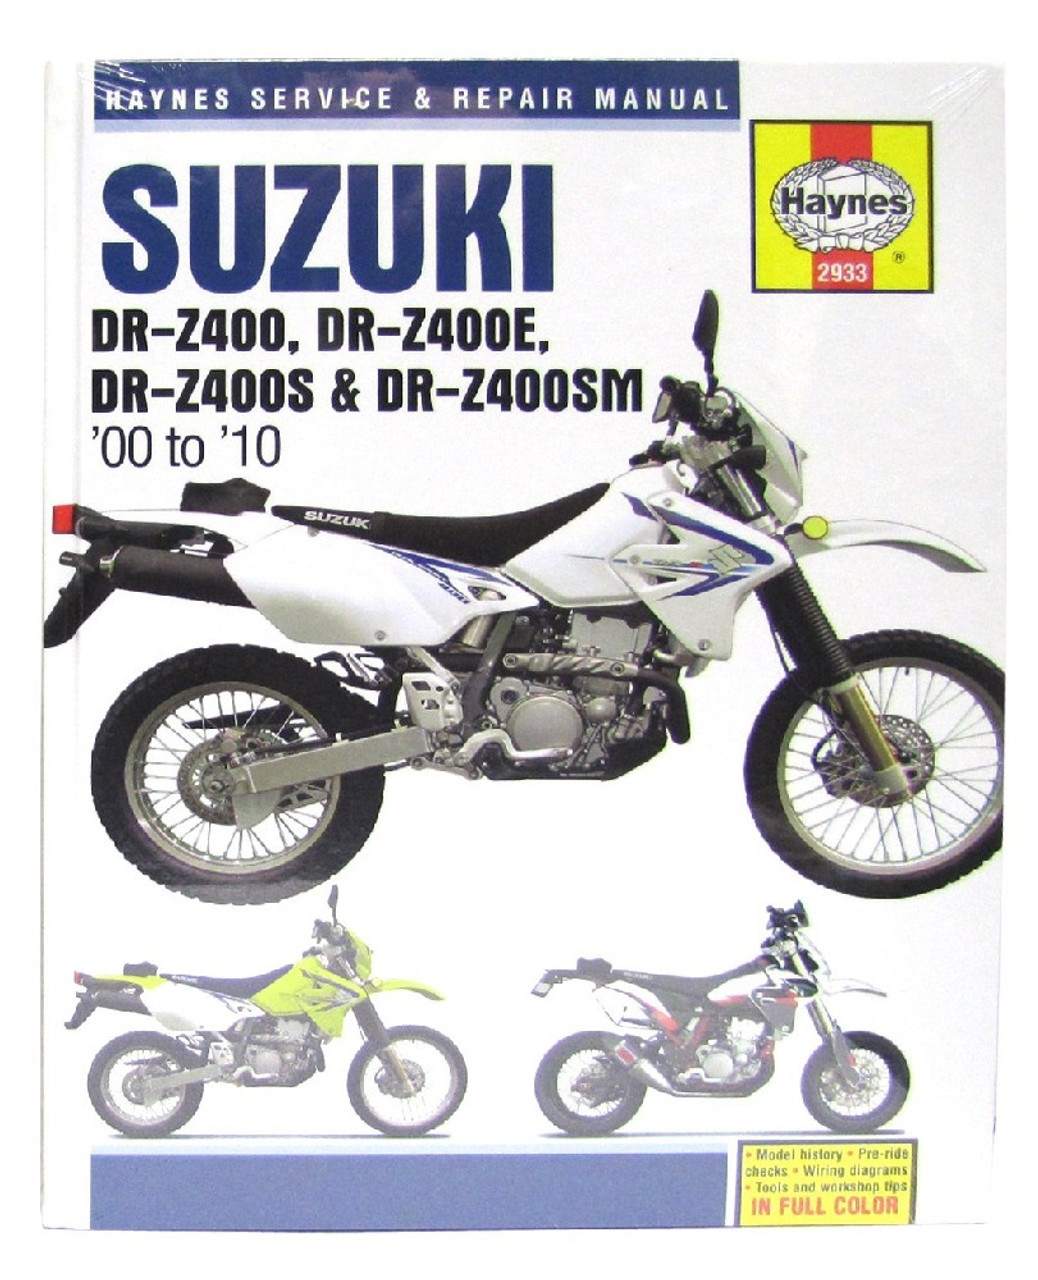 small resolution of haynes manual suzuki drz400 00 05 drz400e 00 09 drz400s sm 00 10 each mymotoparts com